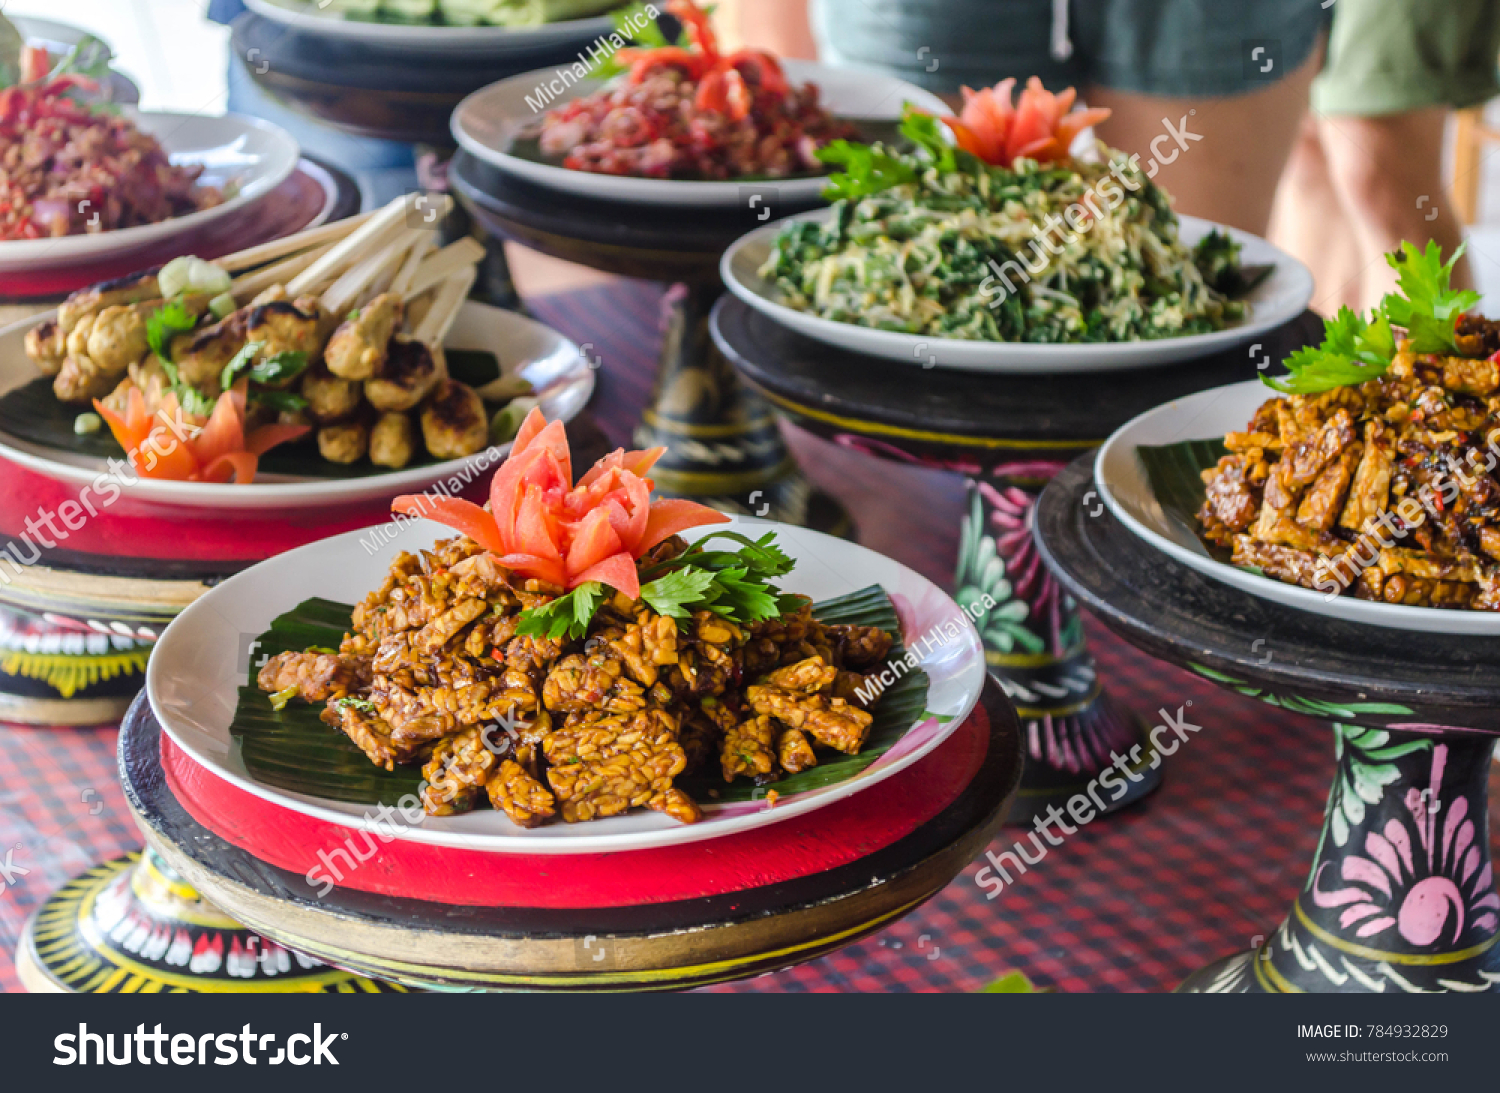 Cuisine Bali Picture Food Done During Cooking Class Stock Photo Edit Now